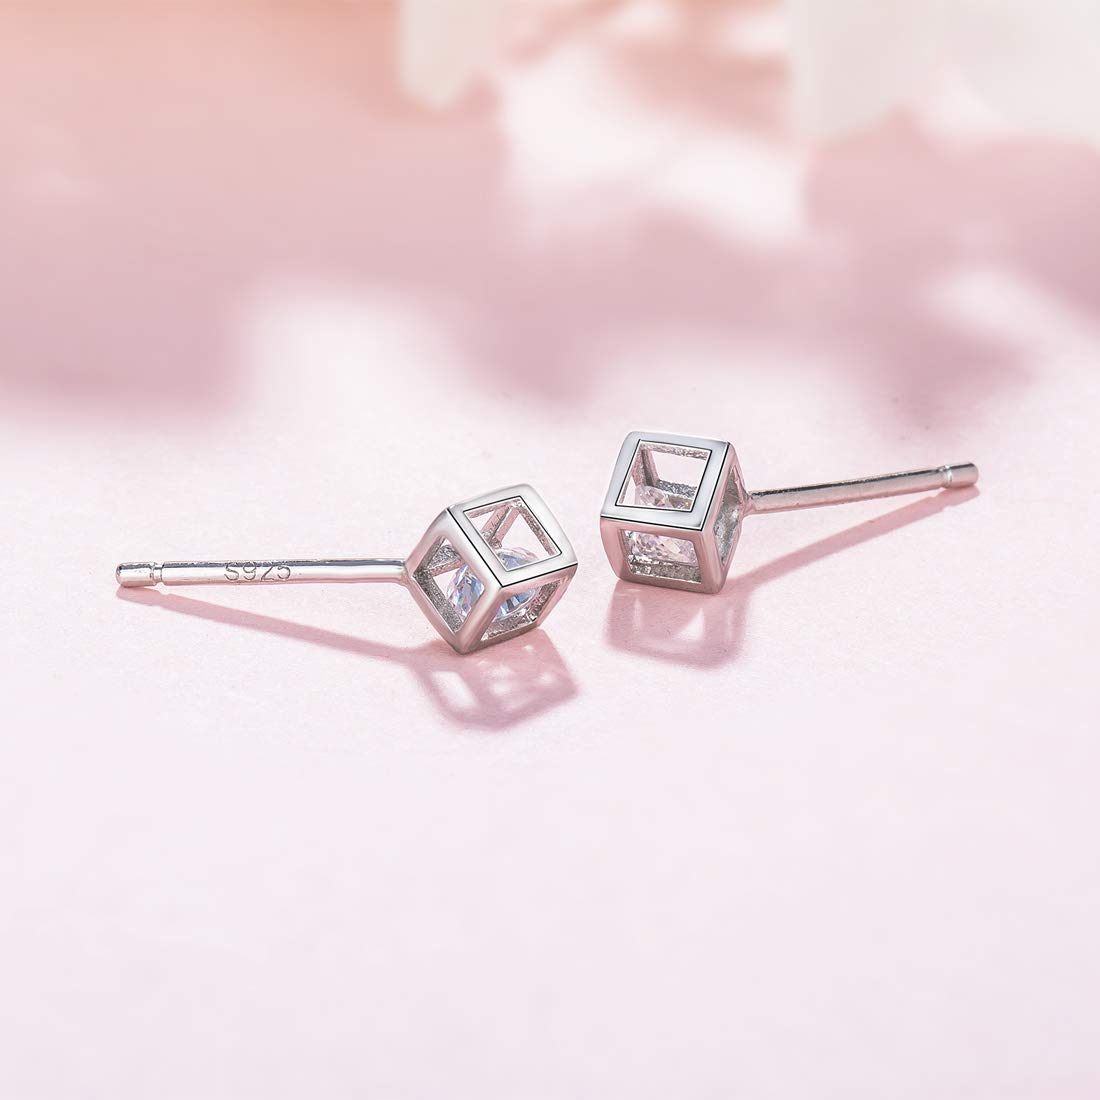 Professional Sale 0.4cm Diamante Silver Plated Stud Earrings 100% High Quality Materials Costume Jewellery